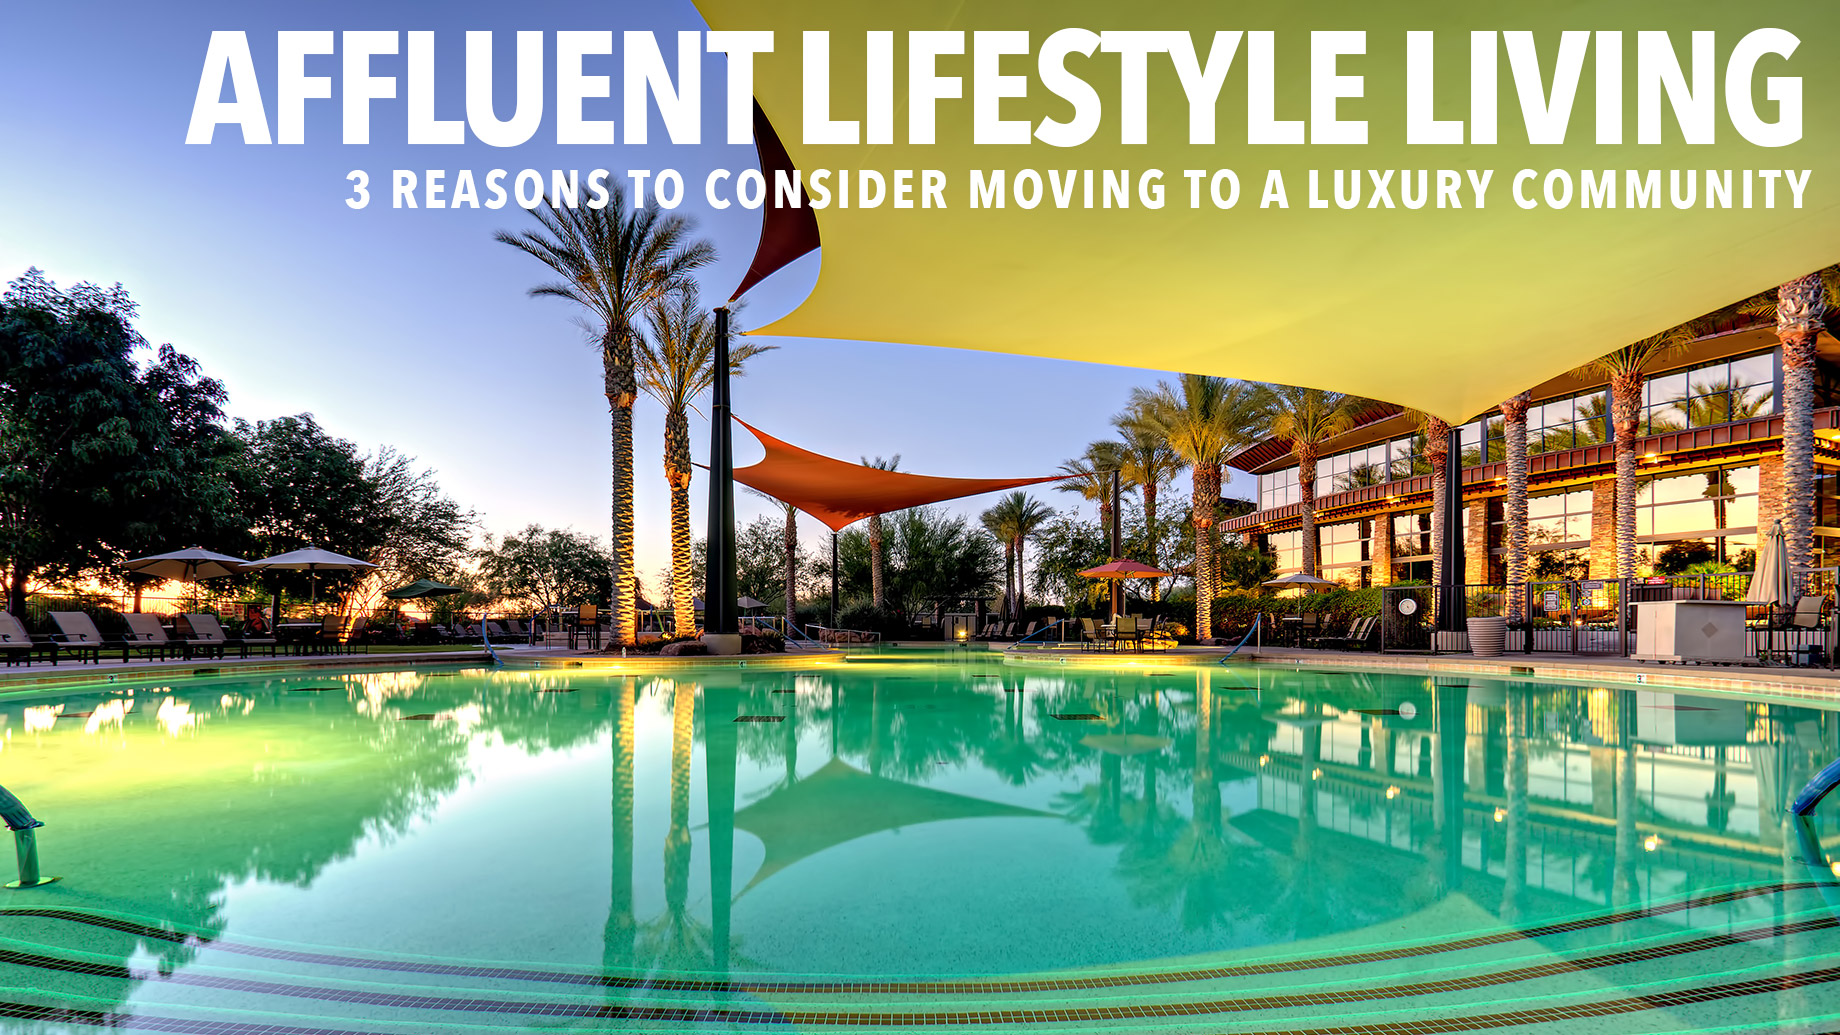 Affluent Lifestyle Living – 3 Reasons to Consider Moving to a Luxury Community